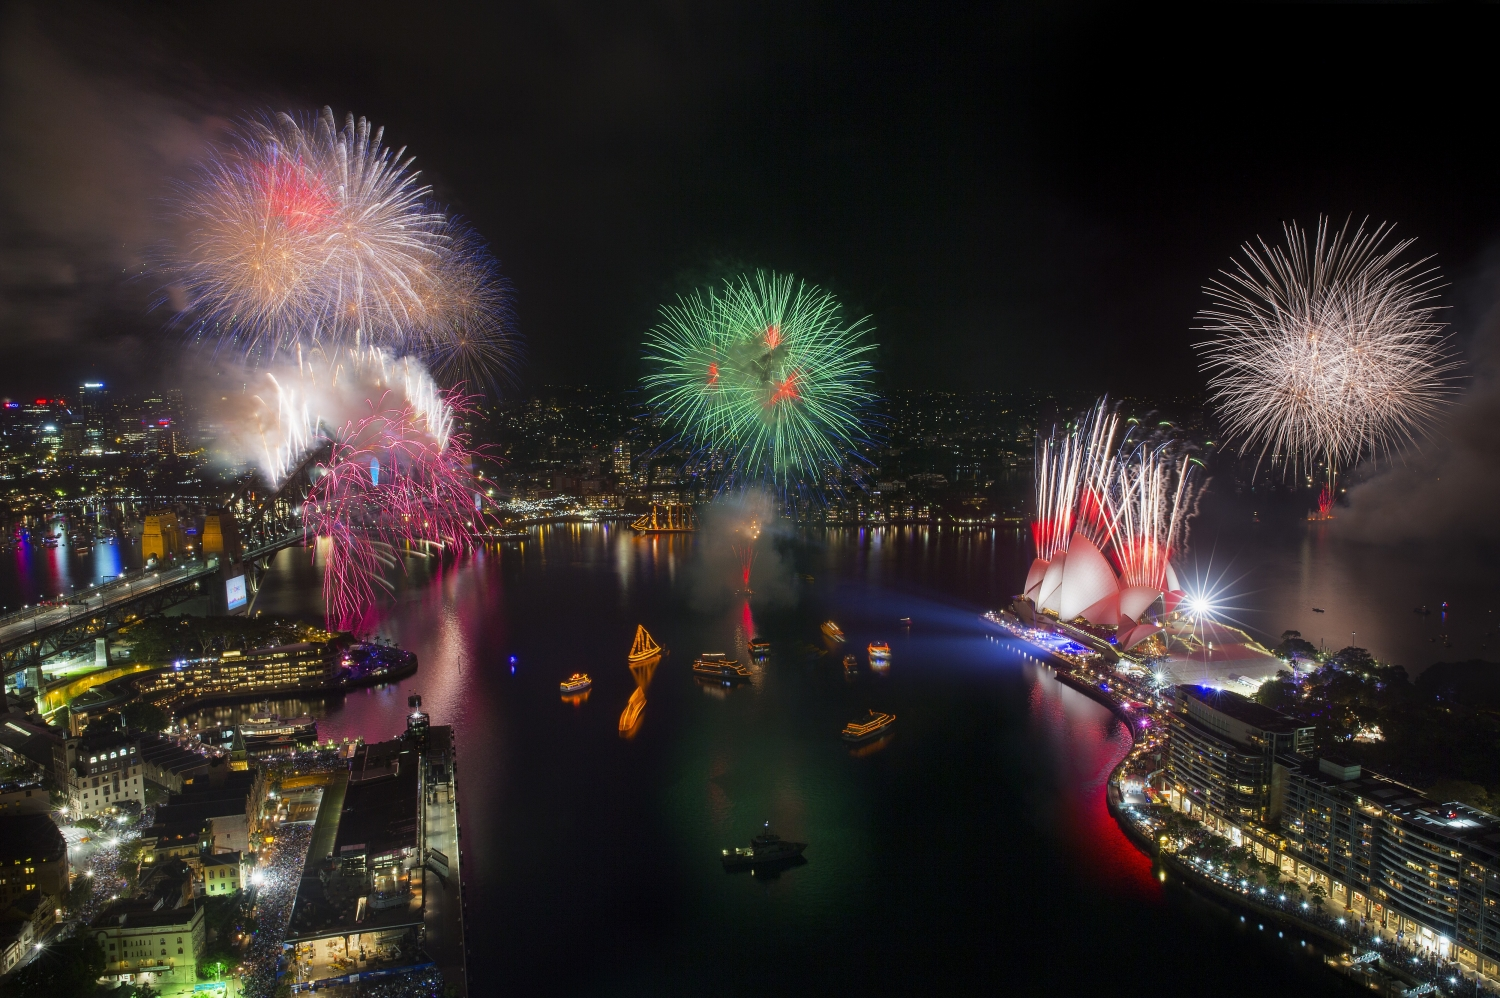 Brightly coloured fireworks explode above the water of Circular Quay and the Sydney Harbour Bridge while revelers crowd the streets of Sydney's Rocks area to celebrate New Years Eve.